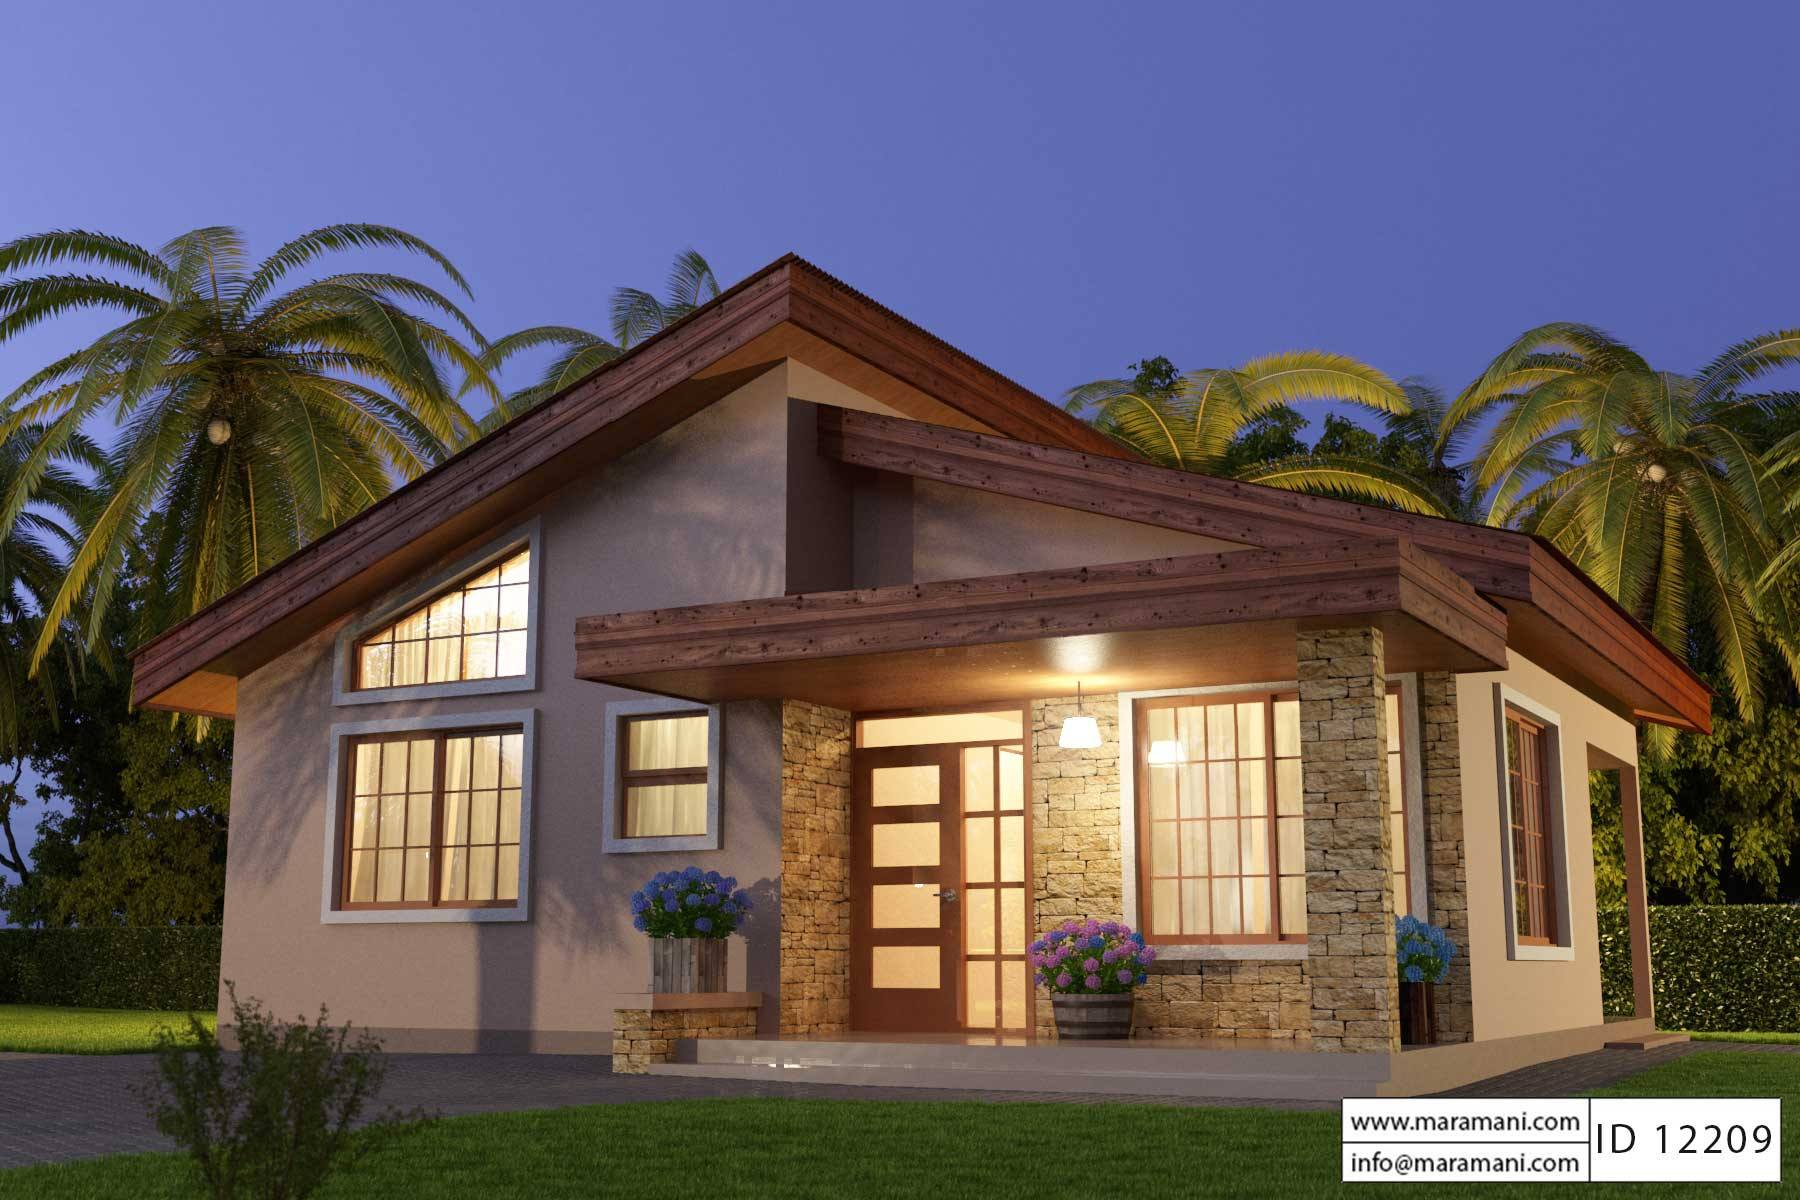 Unique small house plan id12209 floor plans by maramani for Small three bedroom house